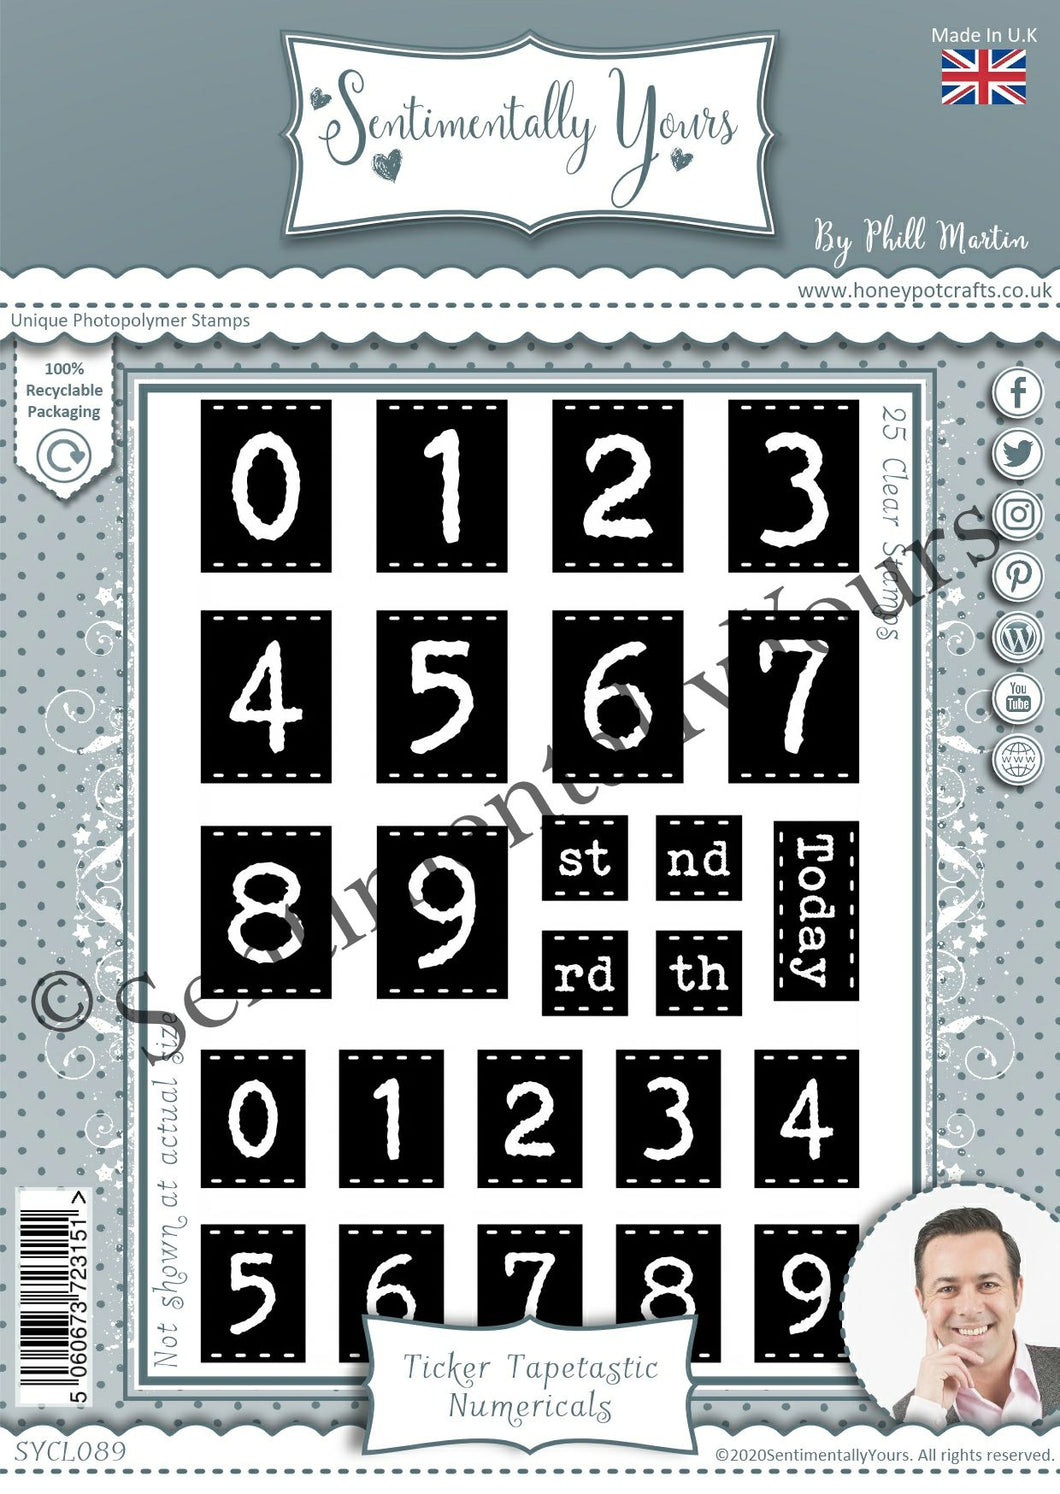 Phill Martin Sentimentally Yours A6 Stamp Set -  Ticket Tapetastic : Numericals